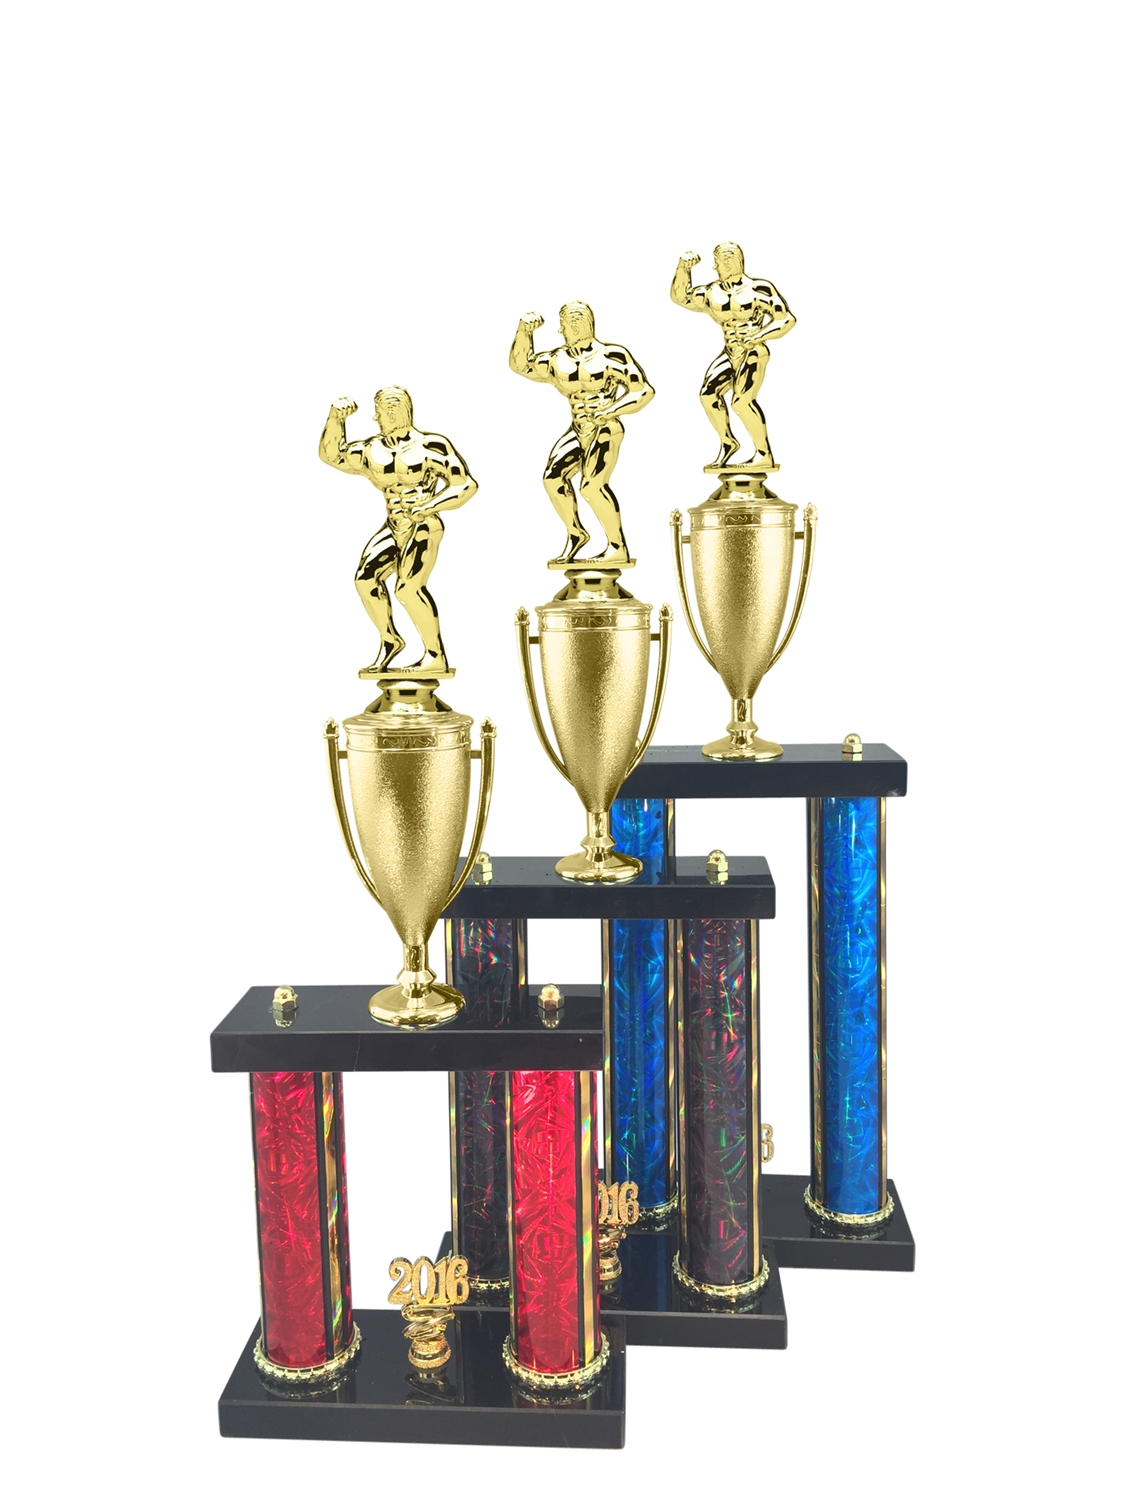 Male Body Building Trophy Available in 11 Color & 3 Size Options